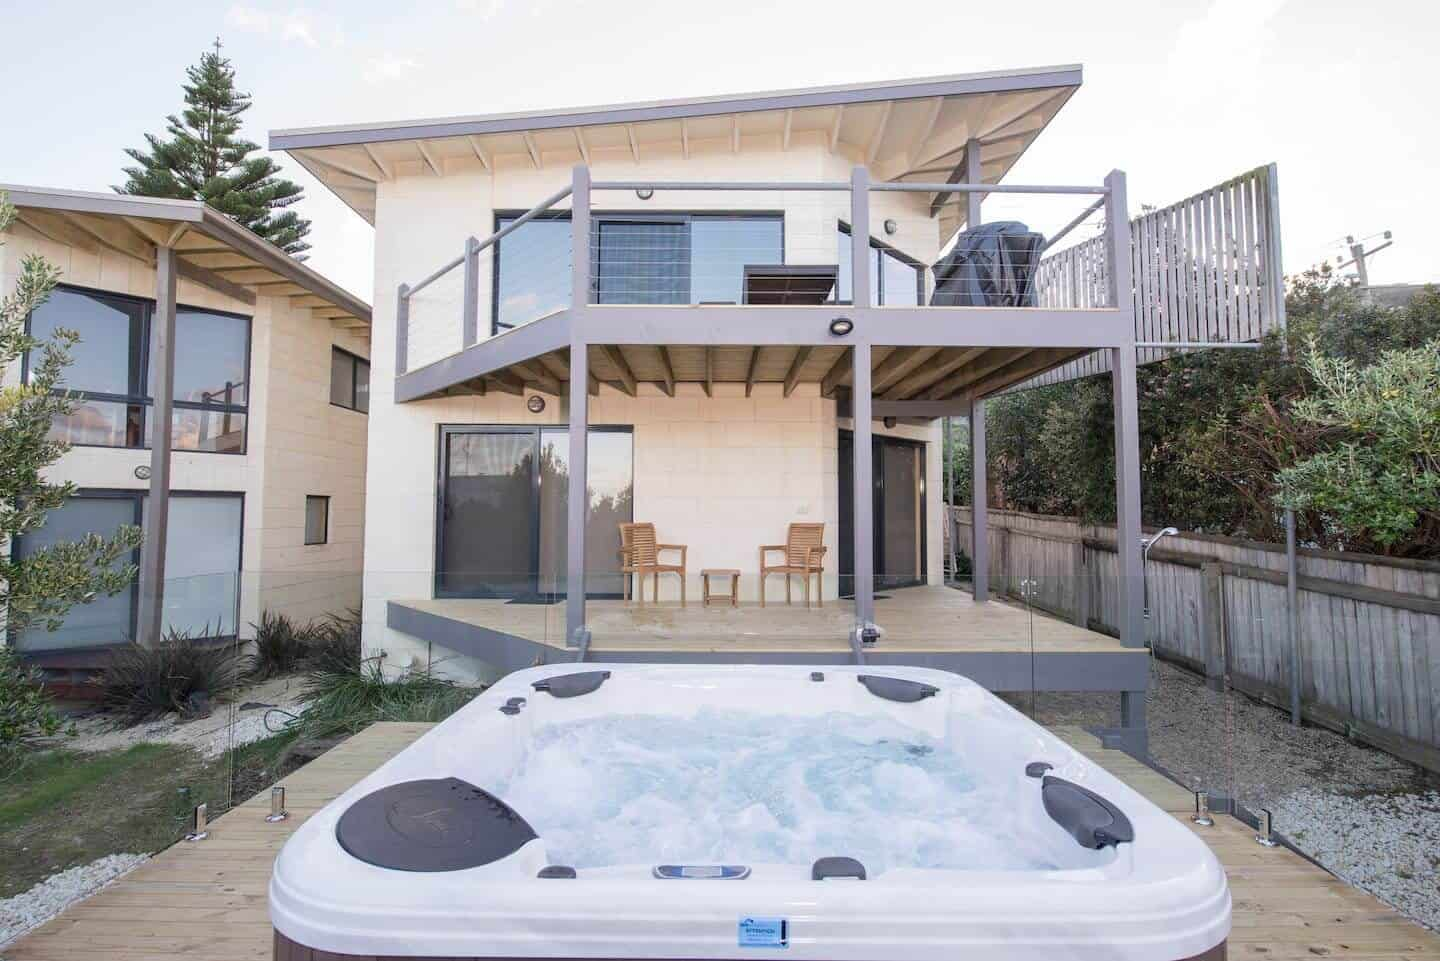 Achilles House with hot tub in the garden